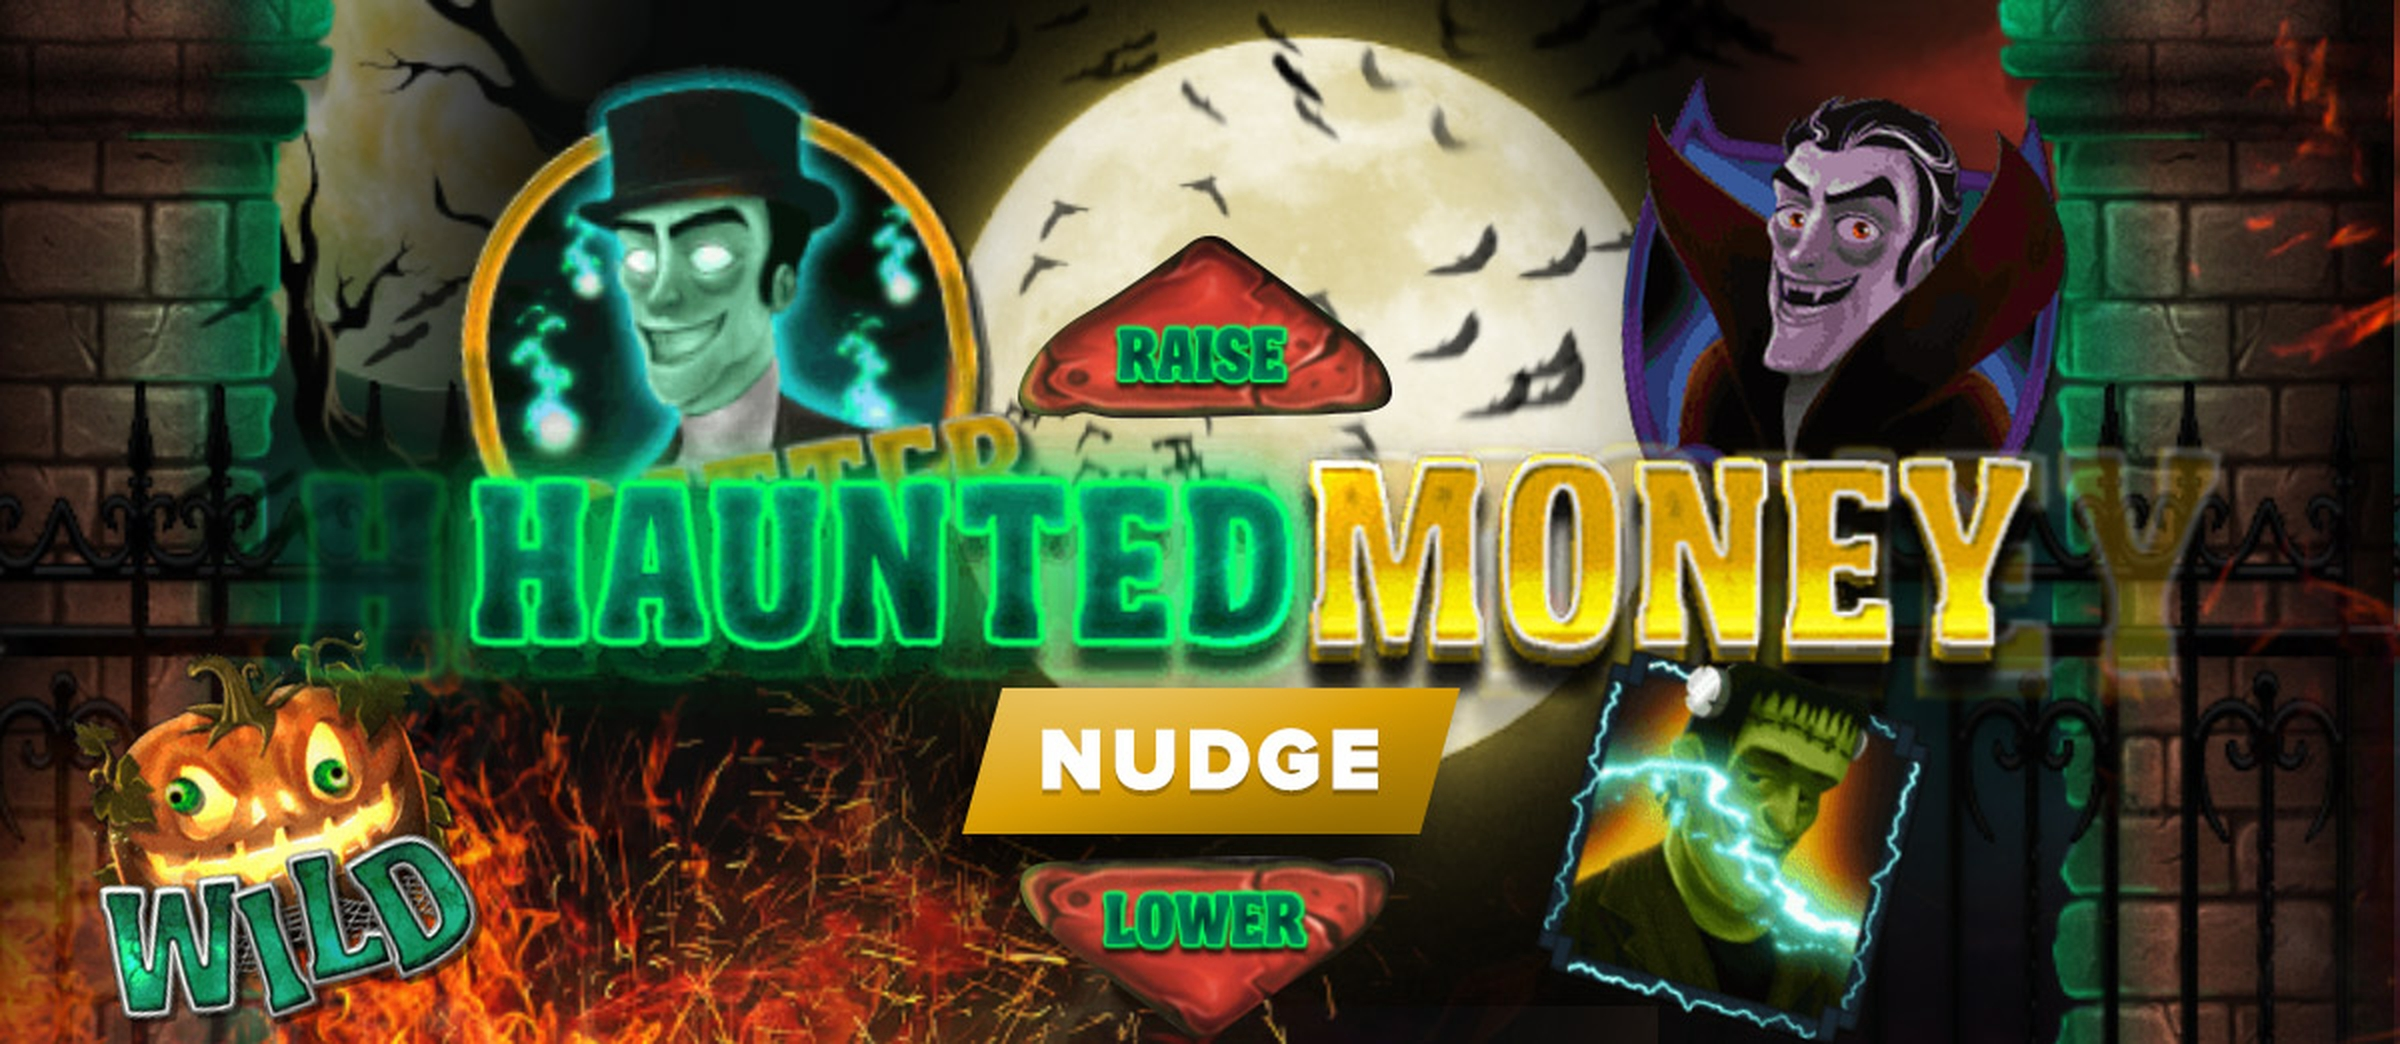 The Haunted Money Nudge Online Slot Demo Game by Inbet Games